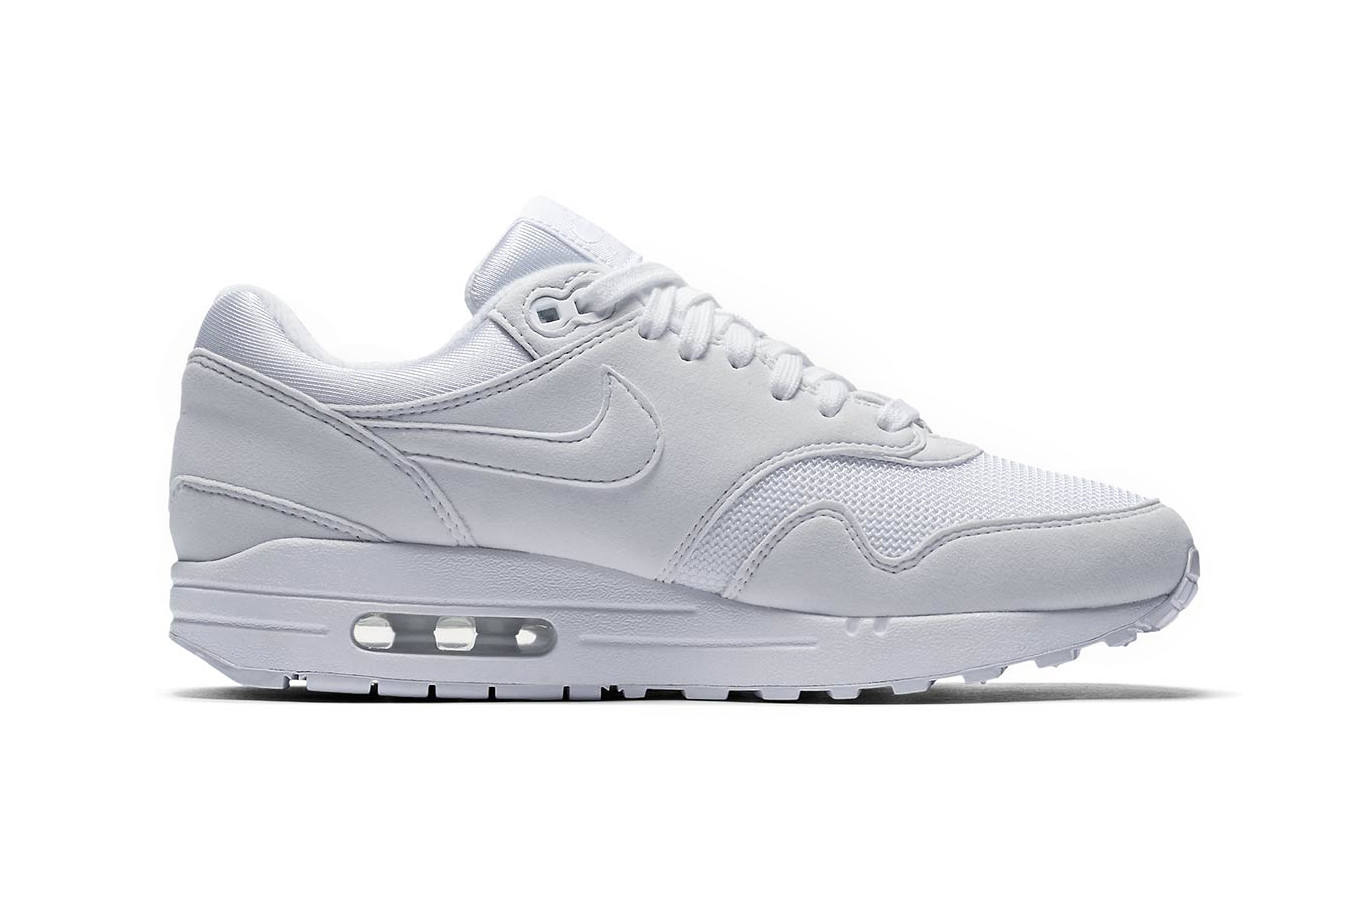 Nike Air Max 1 Releases in Triple White